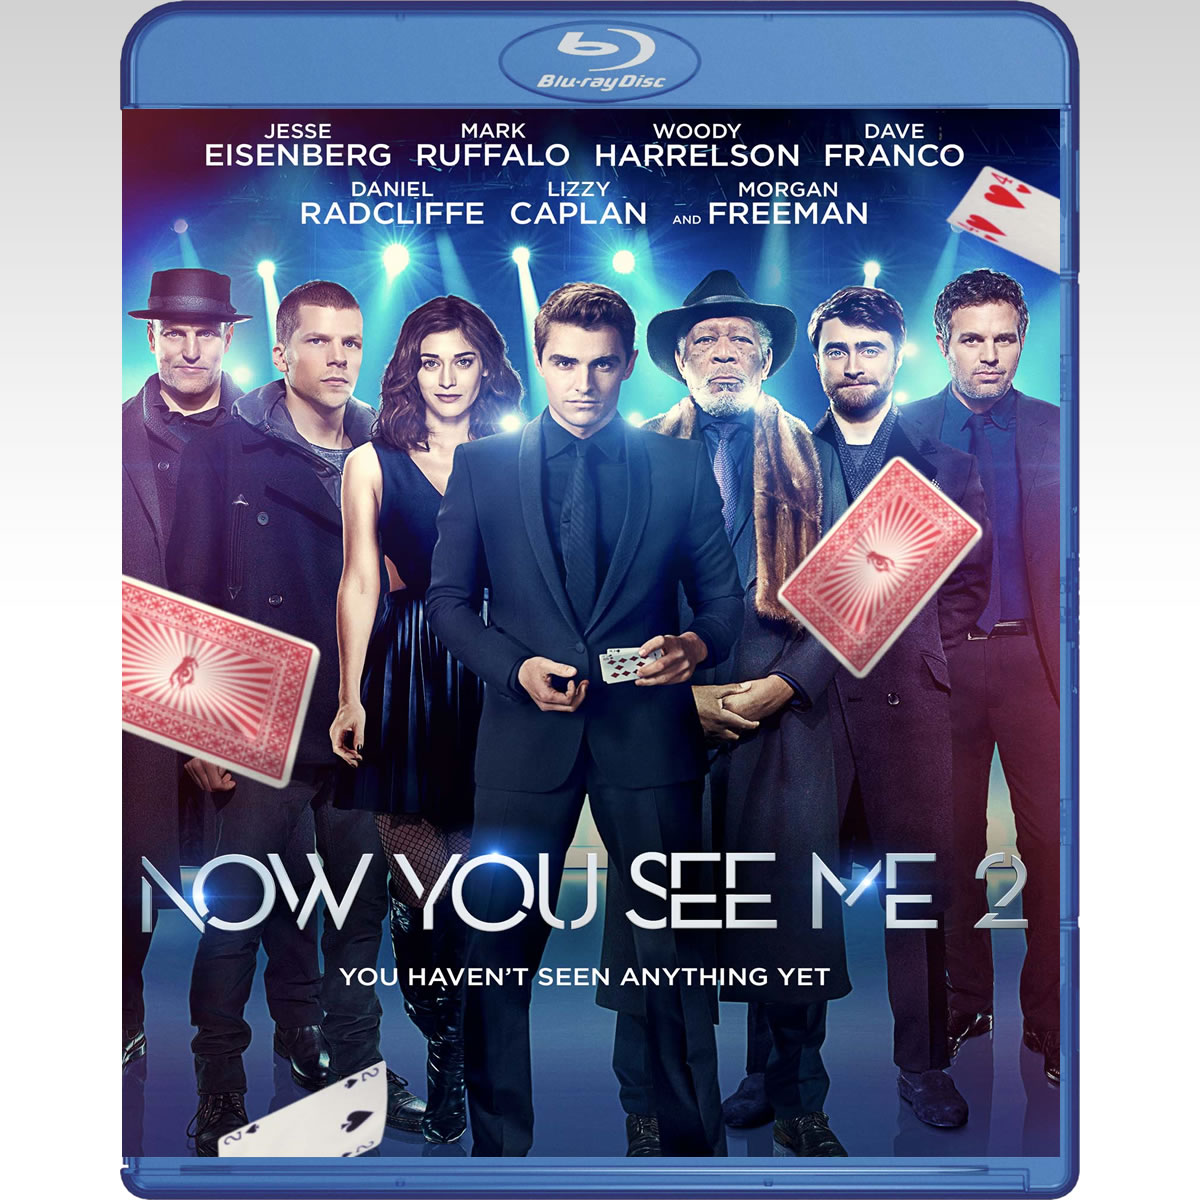 NOW YOU SEE ME 2 - Η ΣΥΜΜΟΡΙΑ ΤΩΝ ΜΑΓΩΝ 2 (BLU-RAY)